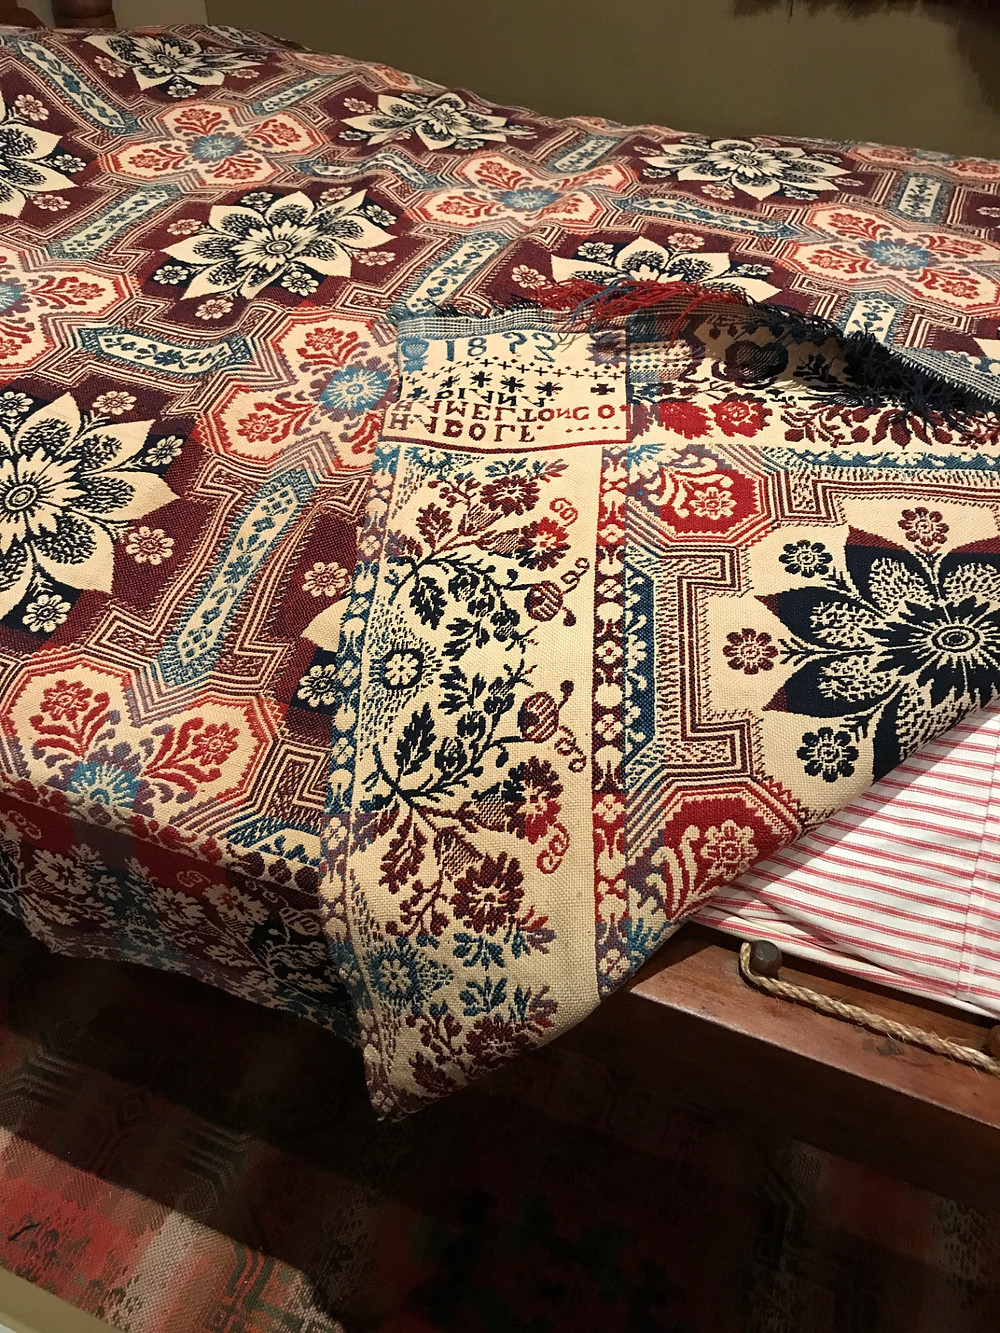 Coverlets were reversible on each side